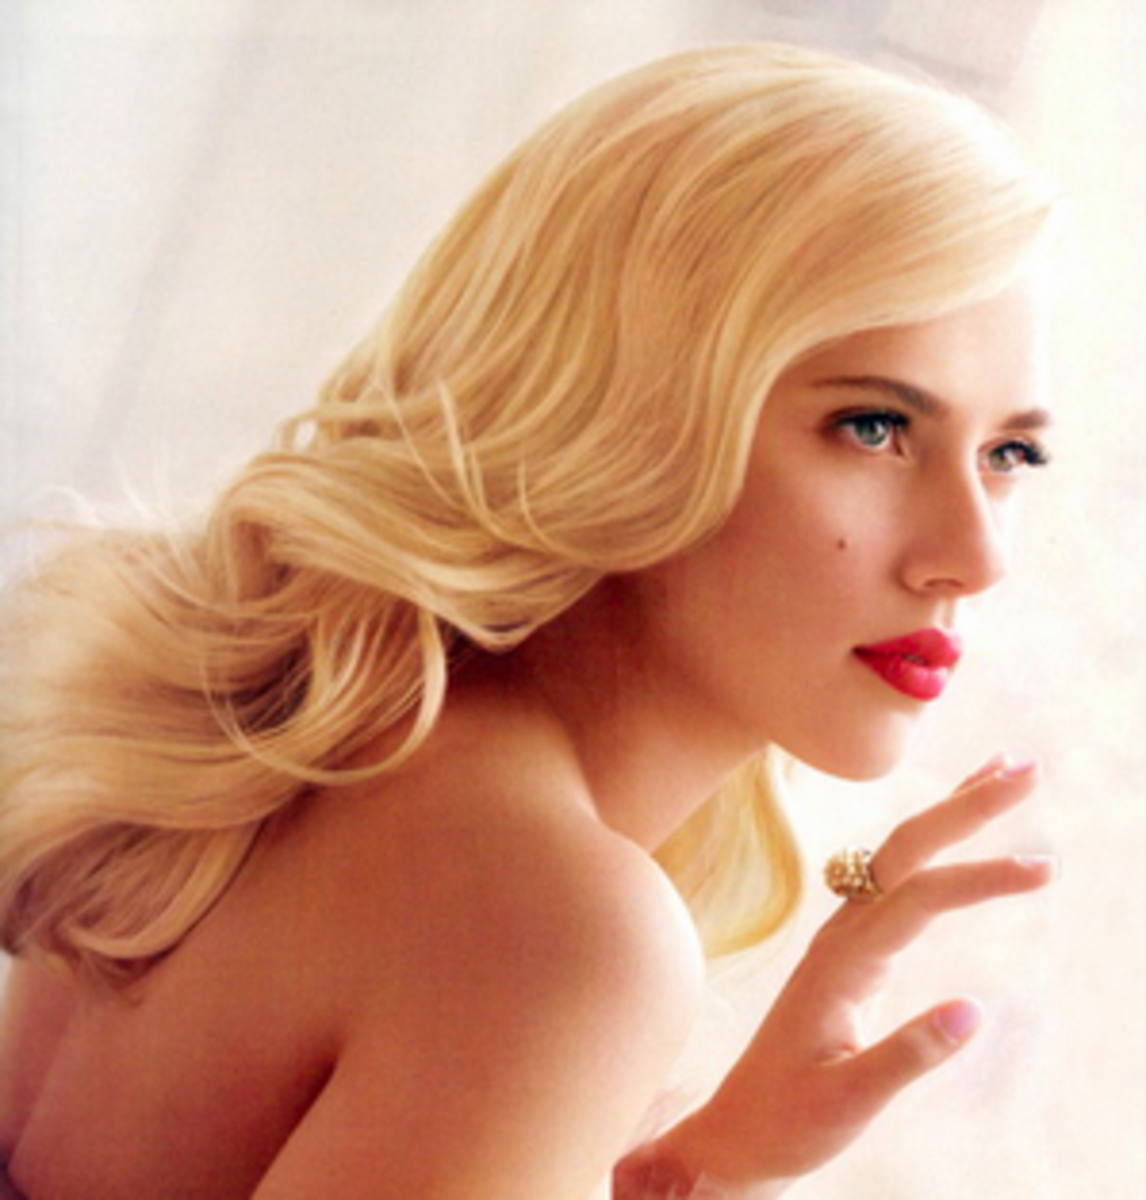 Scarlett Johansson has rocked ginger, red, blonde, brown and she always looks fabulous!